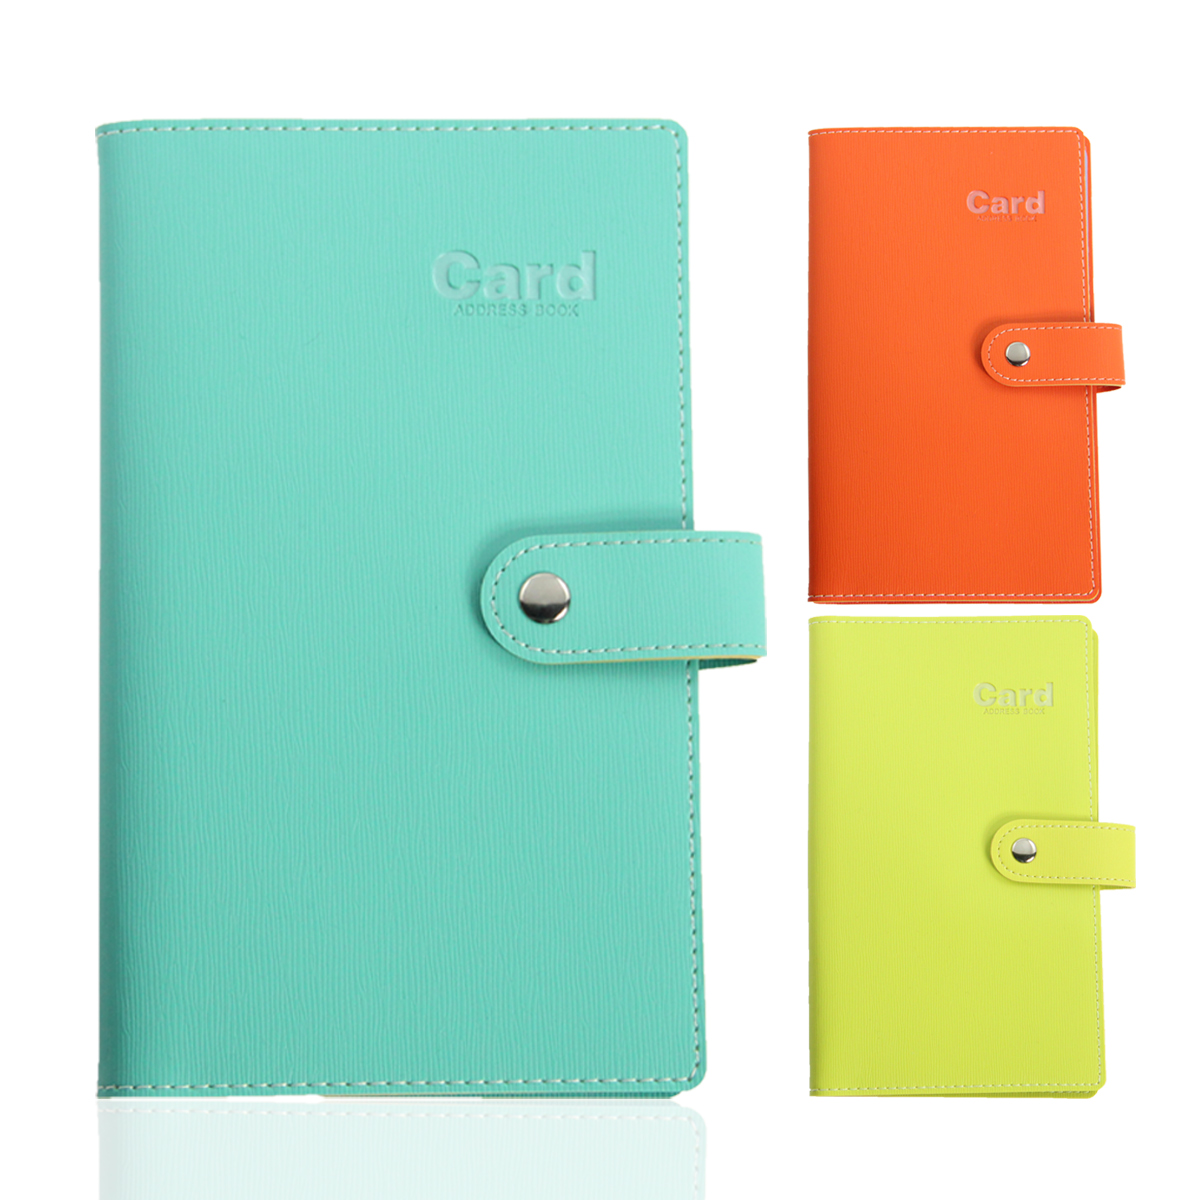 The new 2014 small fresh fashion color pu soft leather card book card book business card holder 240 card holder awesome